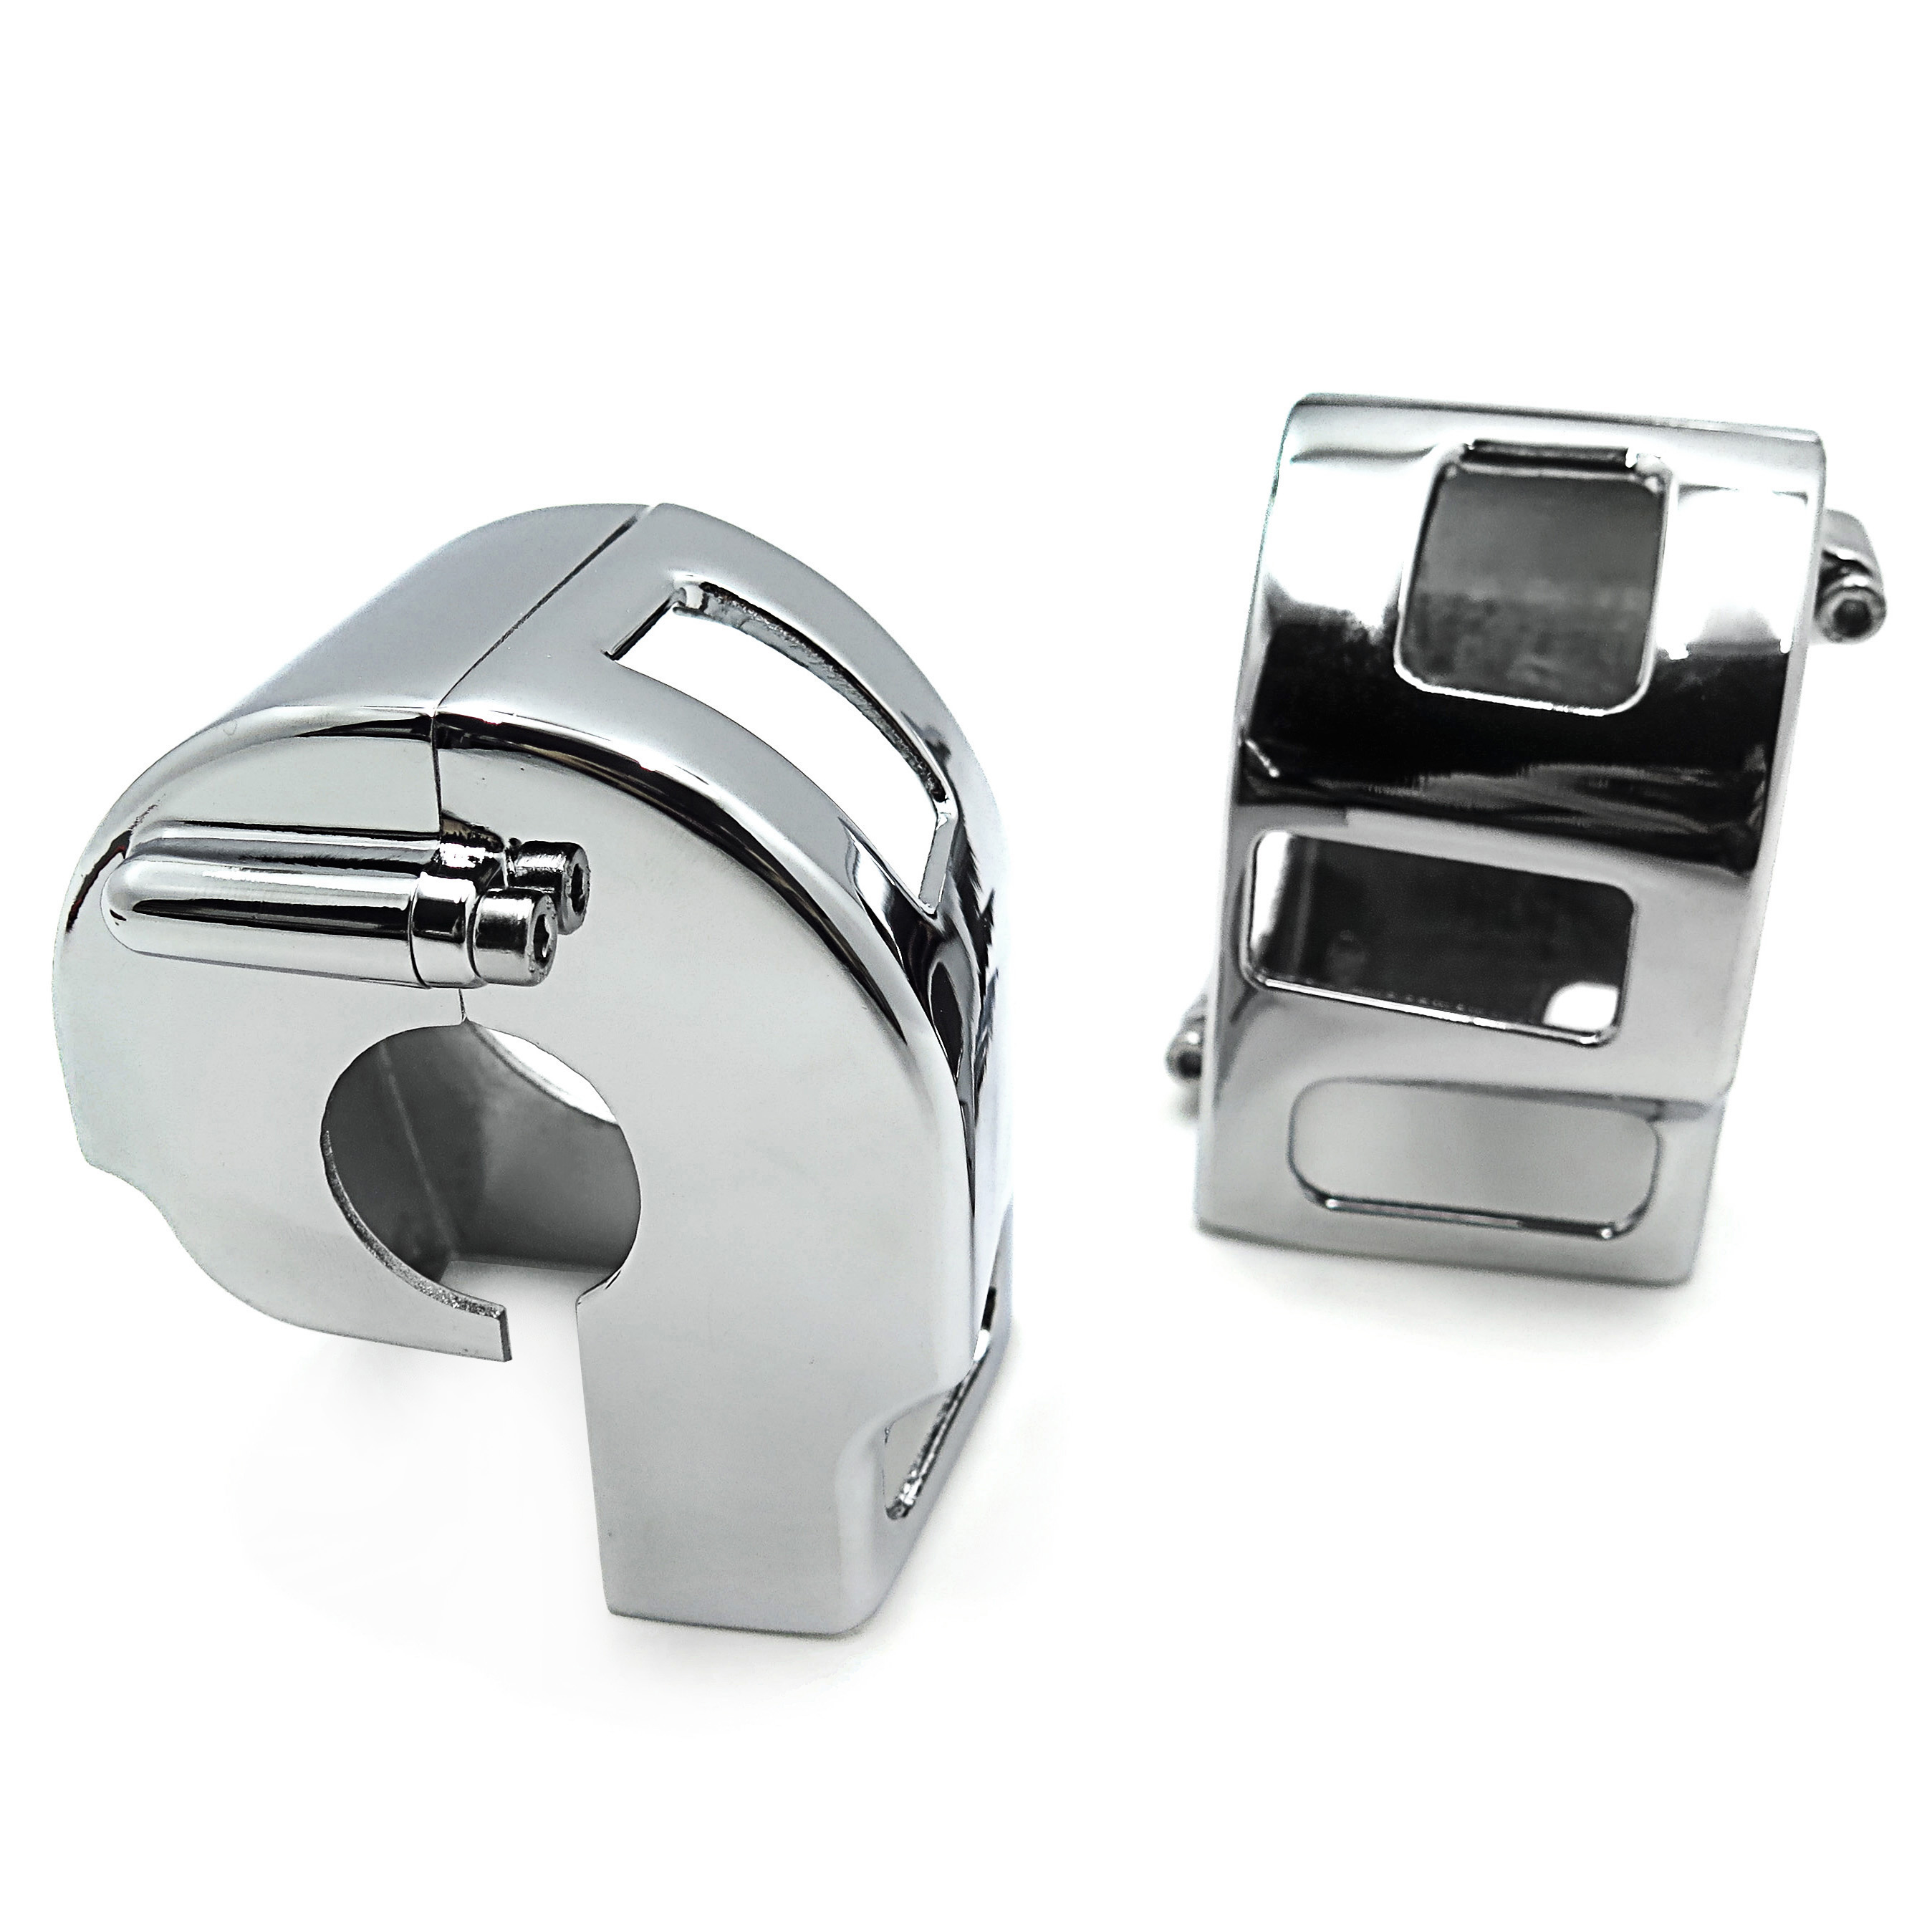 Aftermarket free shipping motorcycle parts Chrome Switch Housing <font><b>Cover</b></font> for <font><b>Yamaha</b></font> V-Star <font><b>XVS</b></font> <font><b>650</b></font> Classic Silverado models image